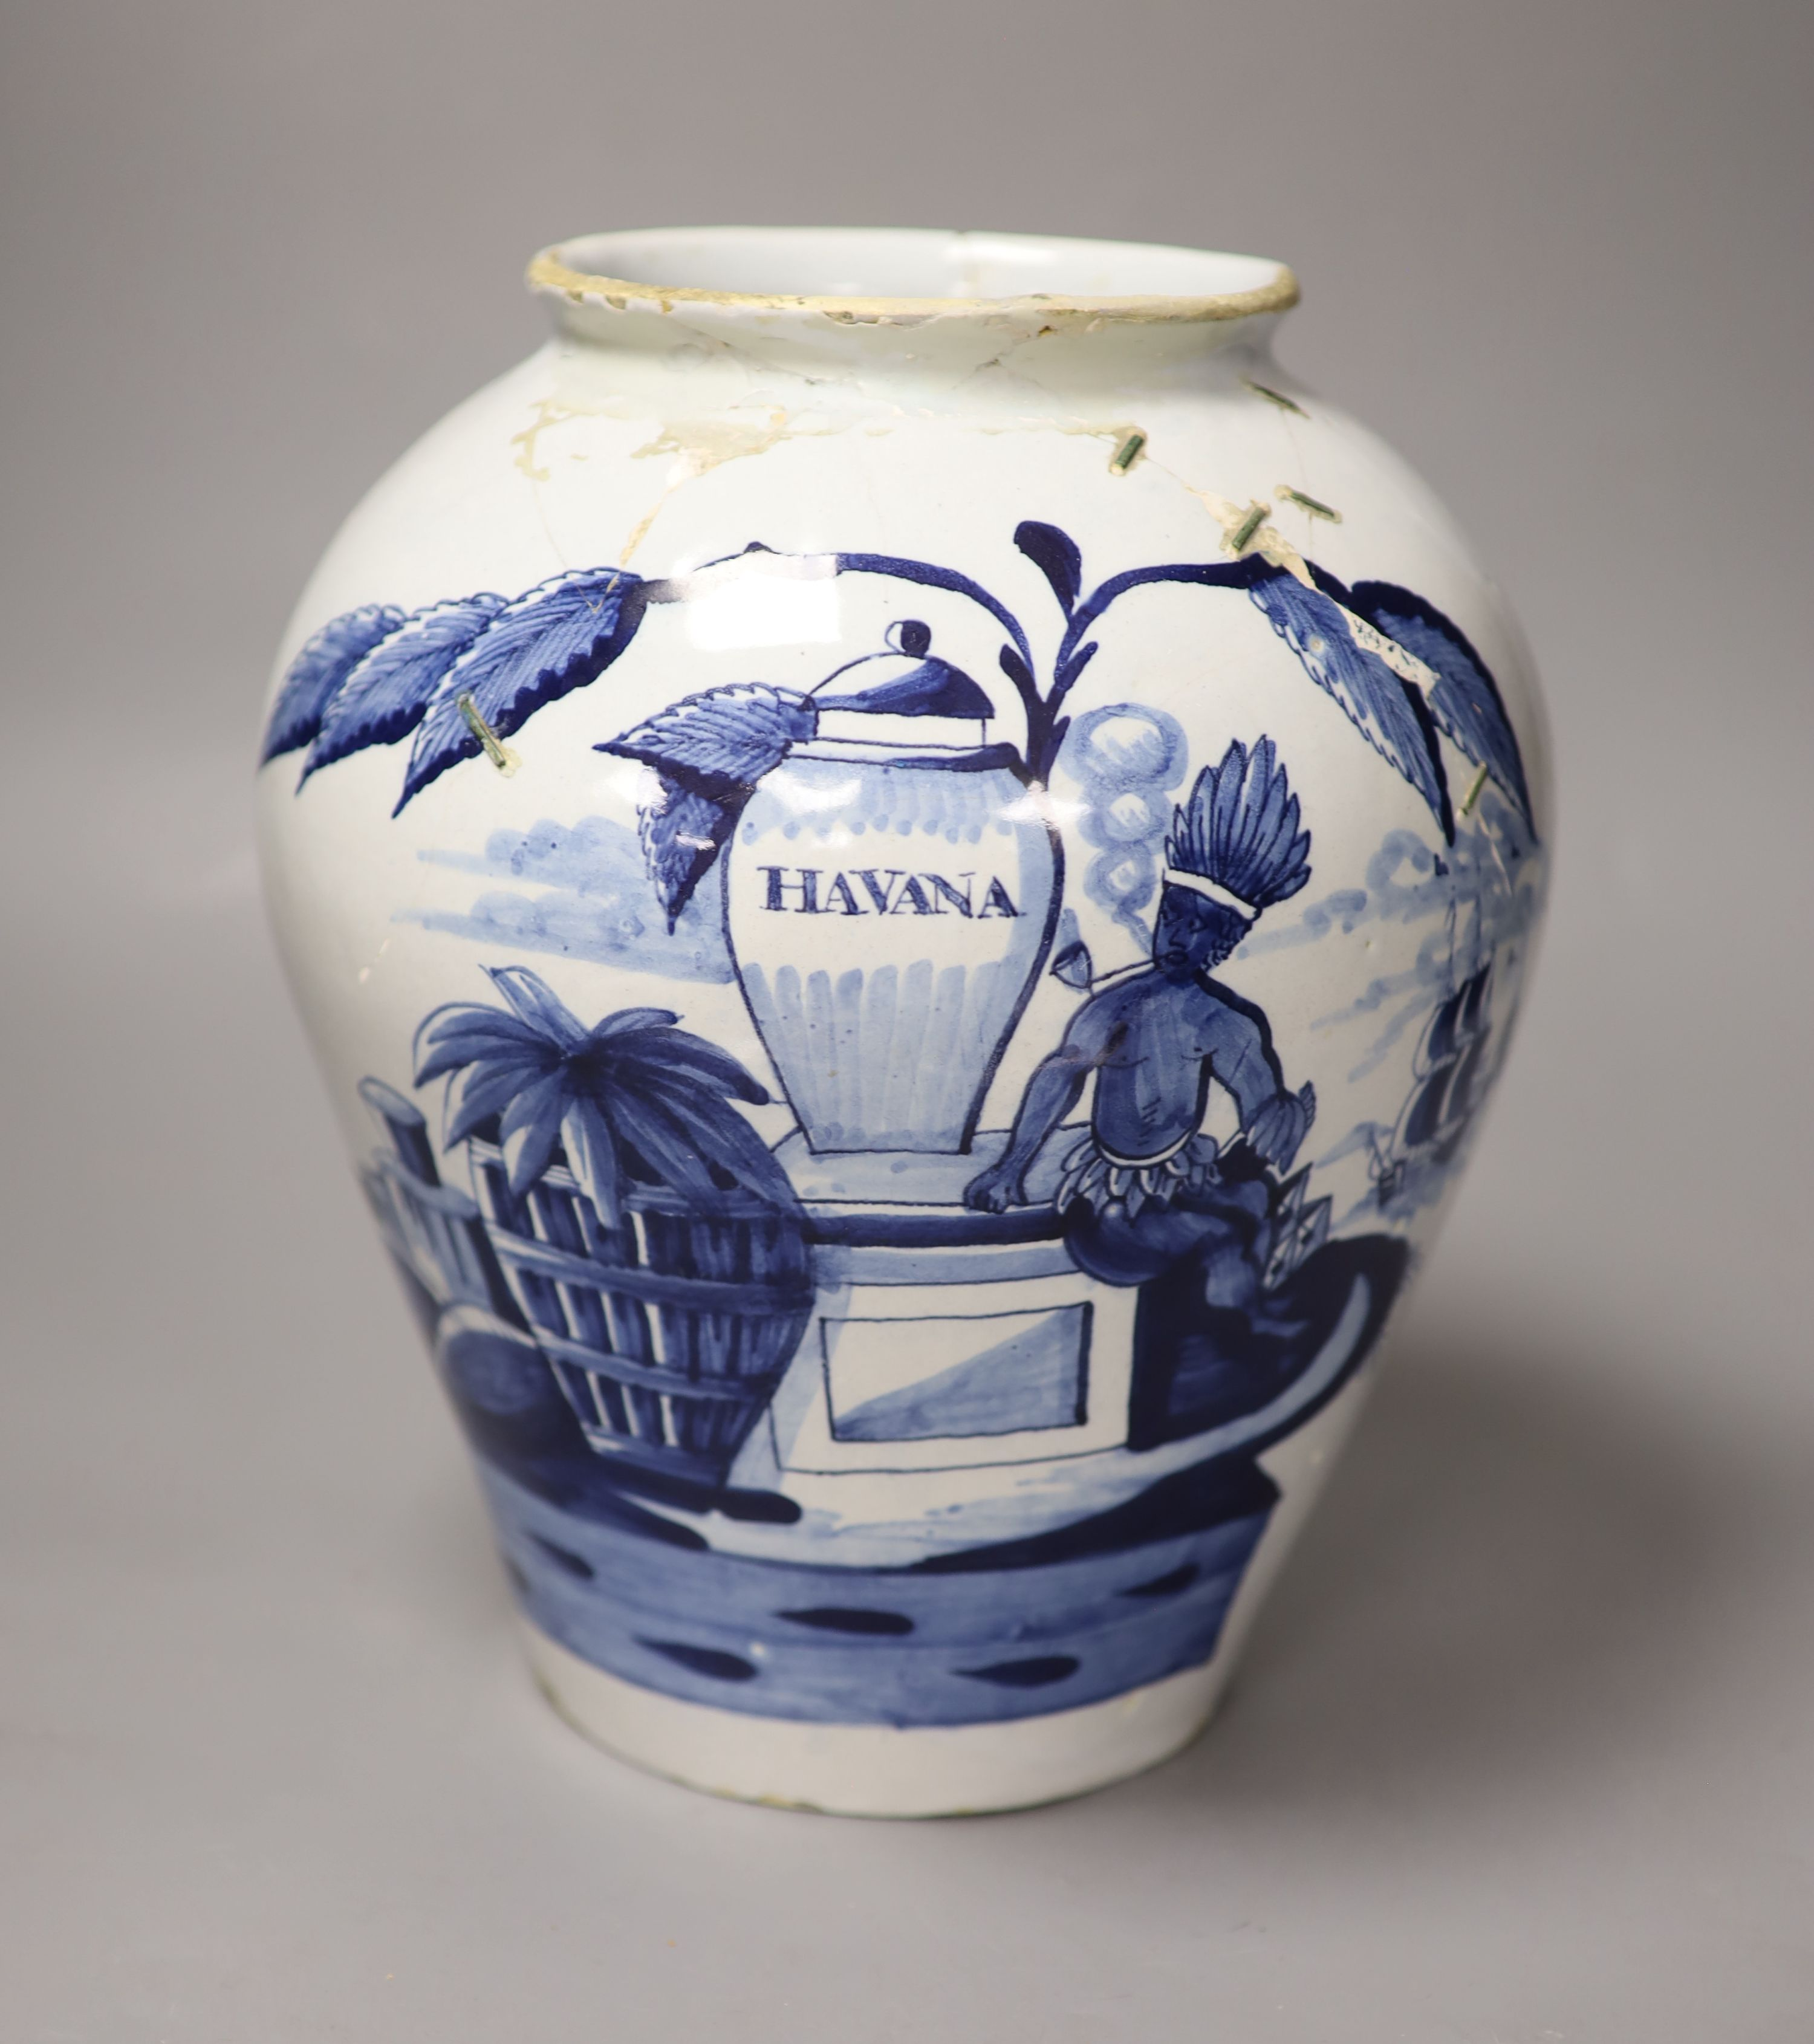 An 18th century Delft 'Havana' tobacco jar, height 26cm (not including cover) (a.f.)